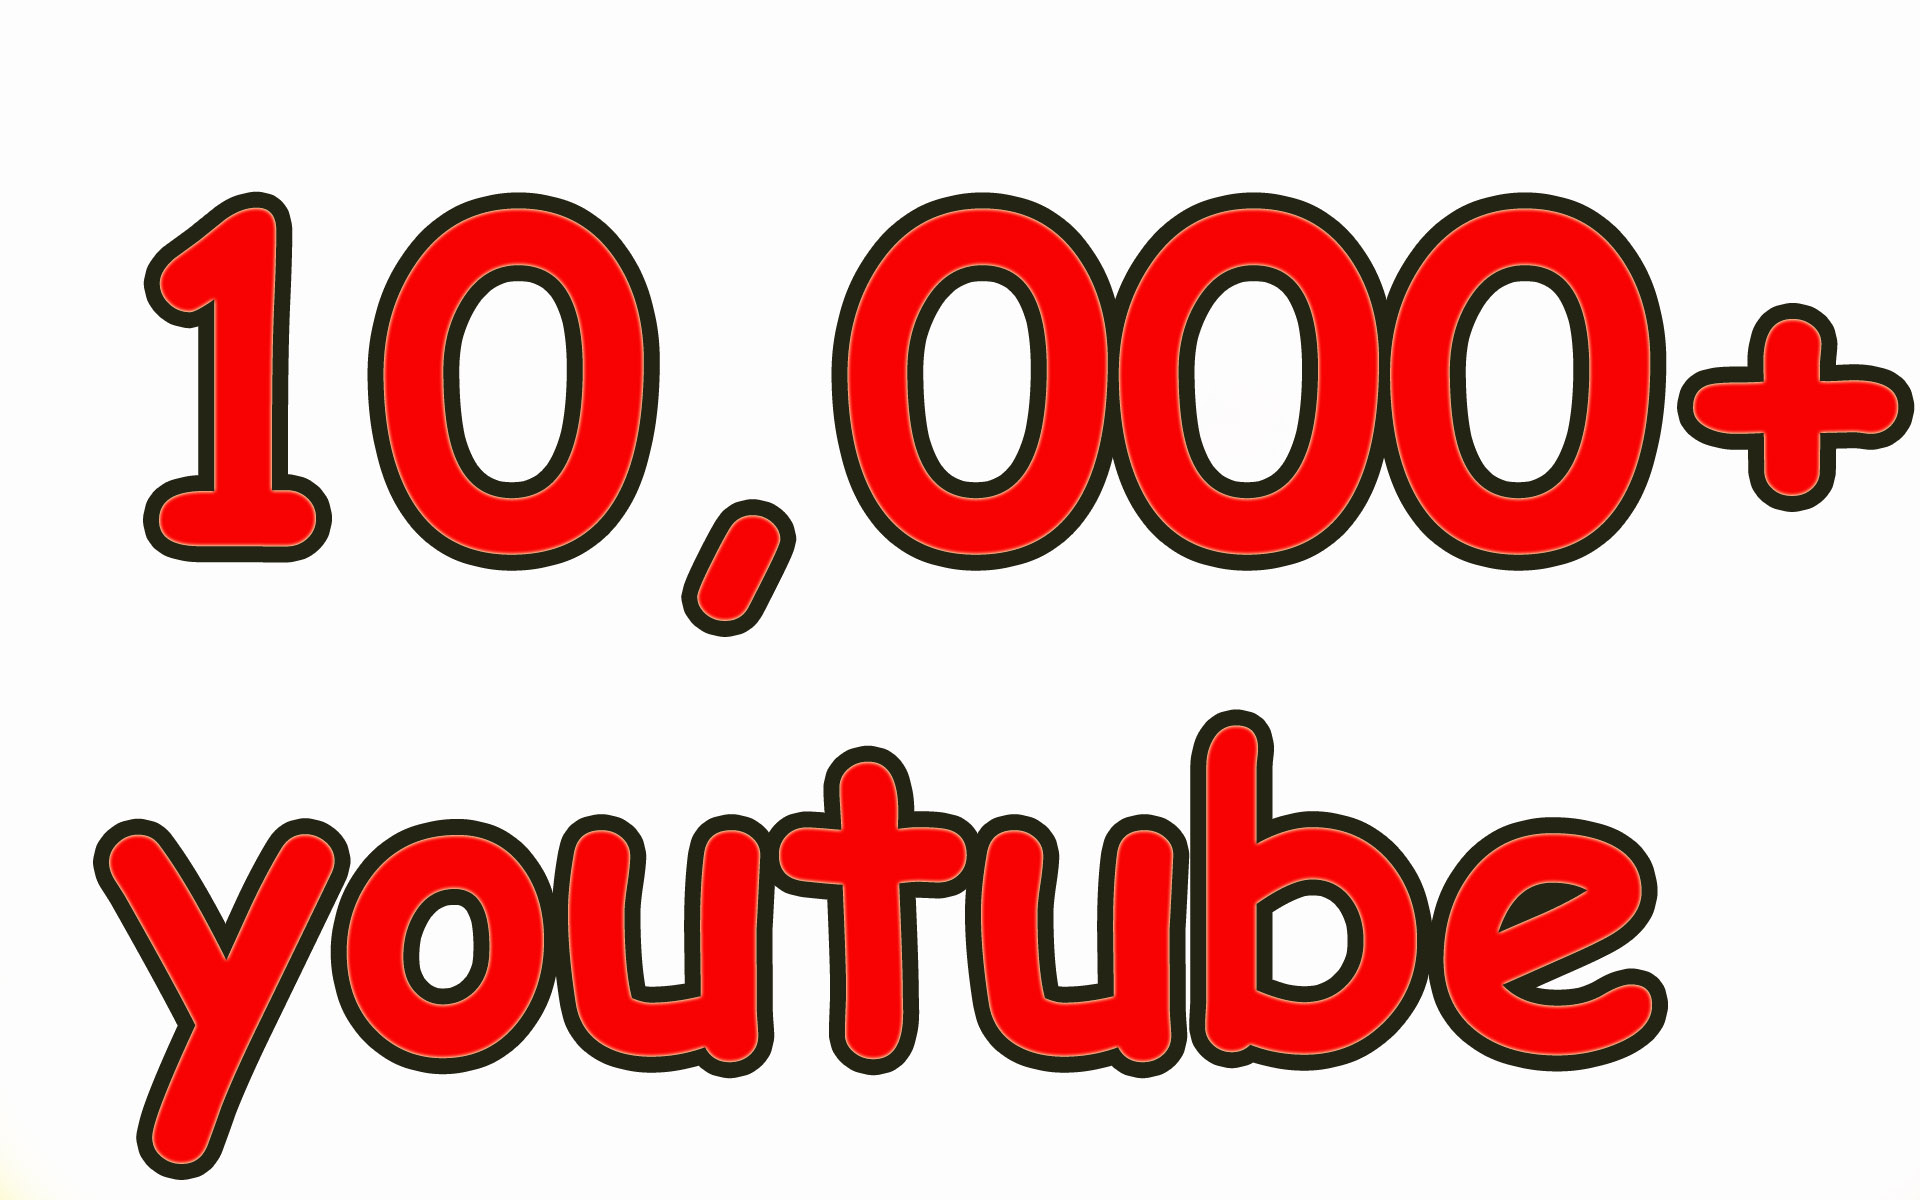 Get 10,000 HIGH QUALITY YouTube Video Views